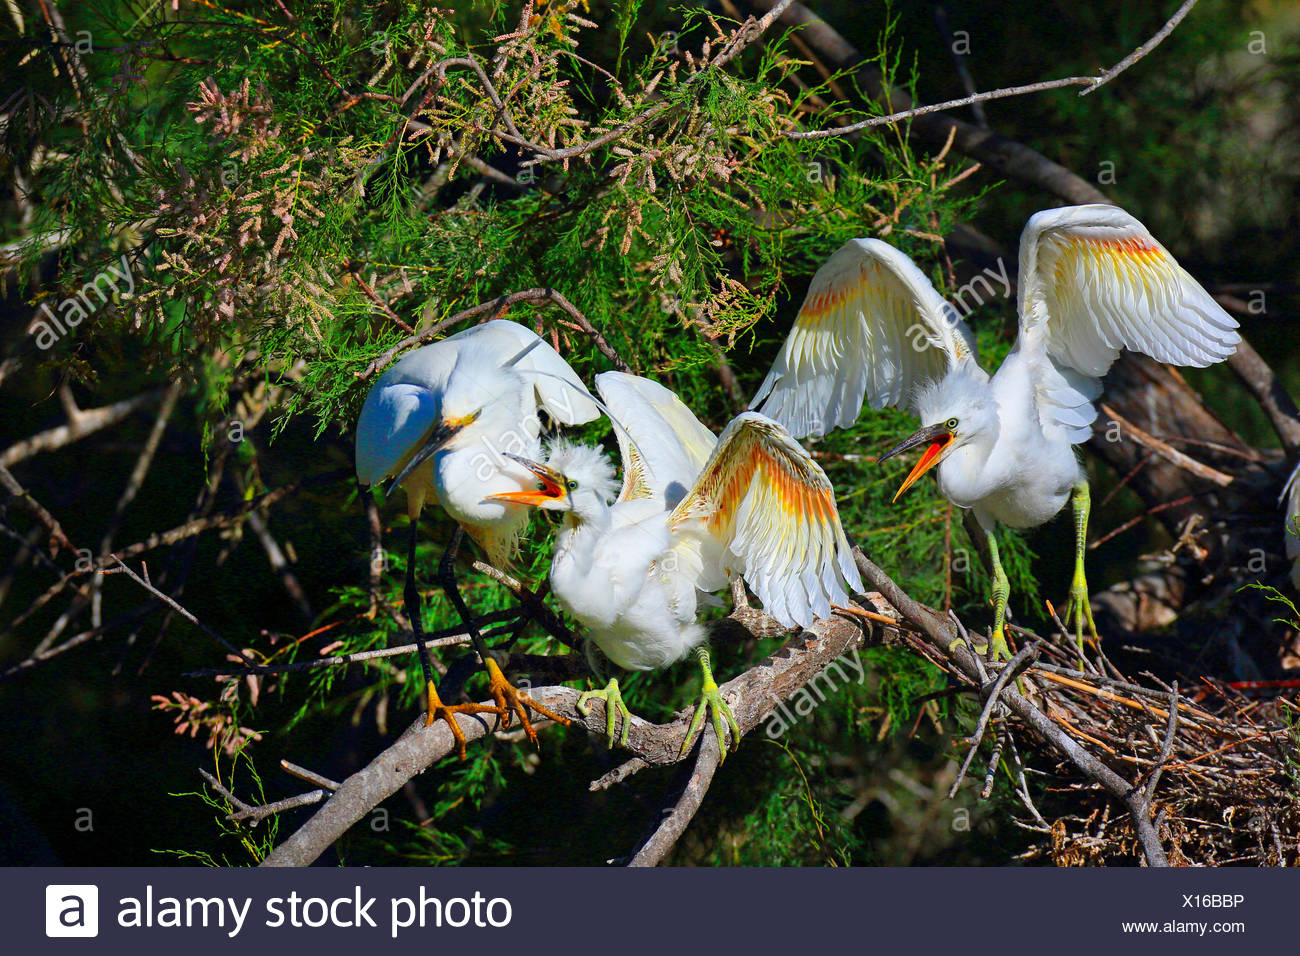 little egret (Egretta garzetta), juvenile birds calling for food, standing in a tamarisk, France, Camargue Stock Photo